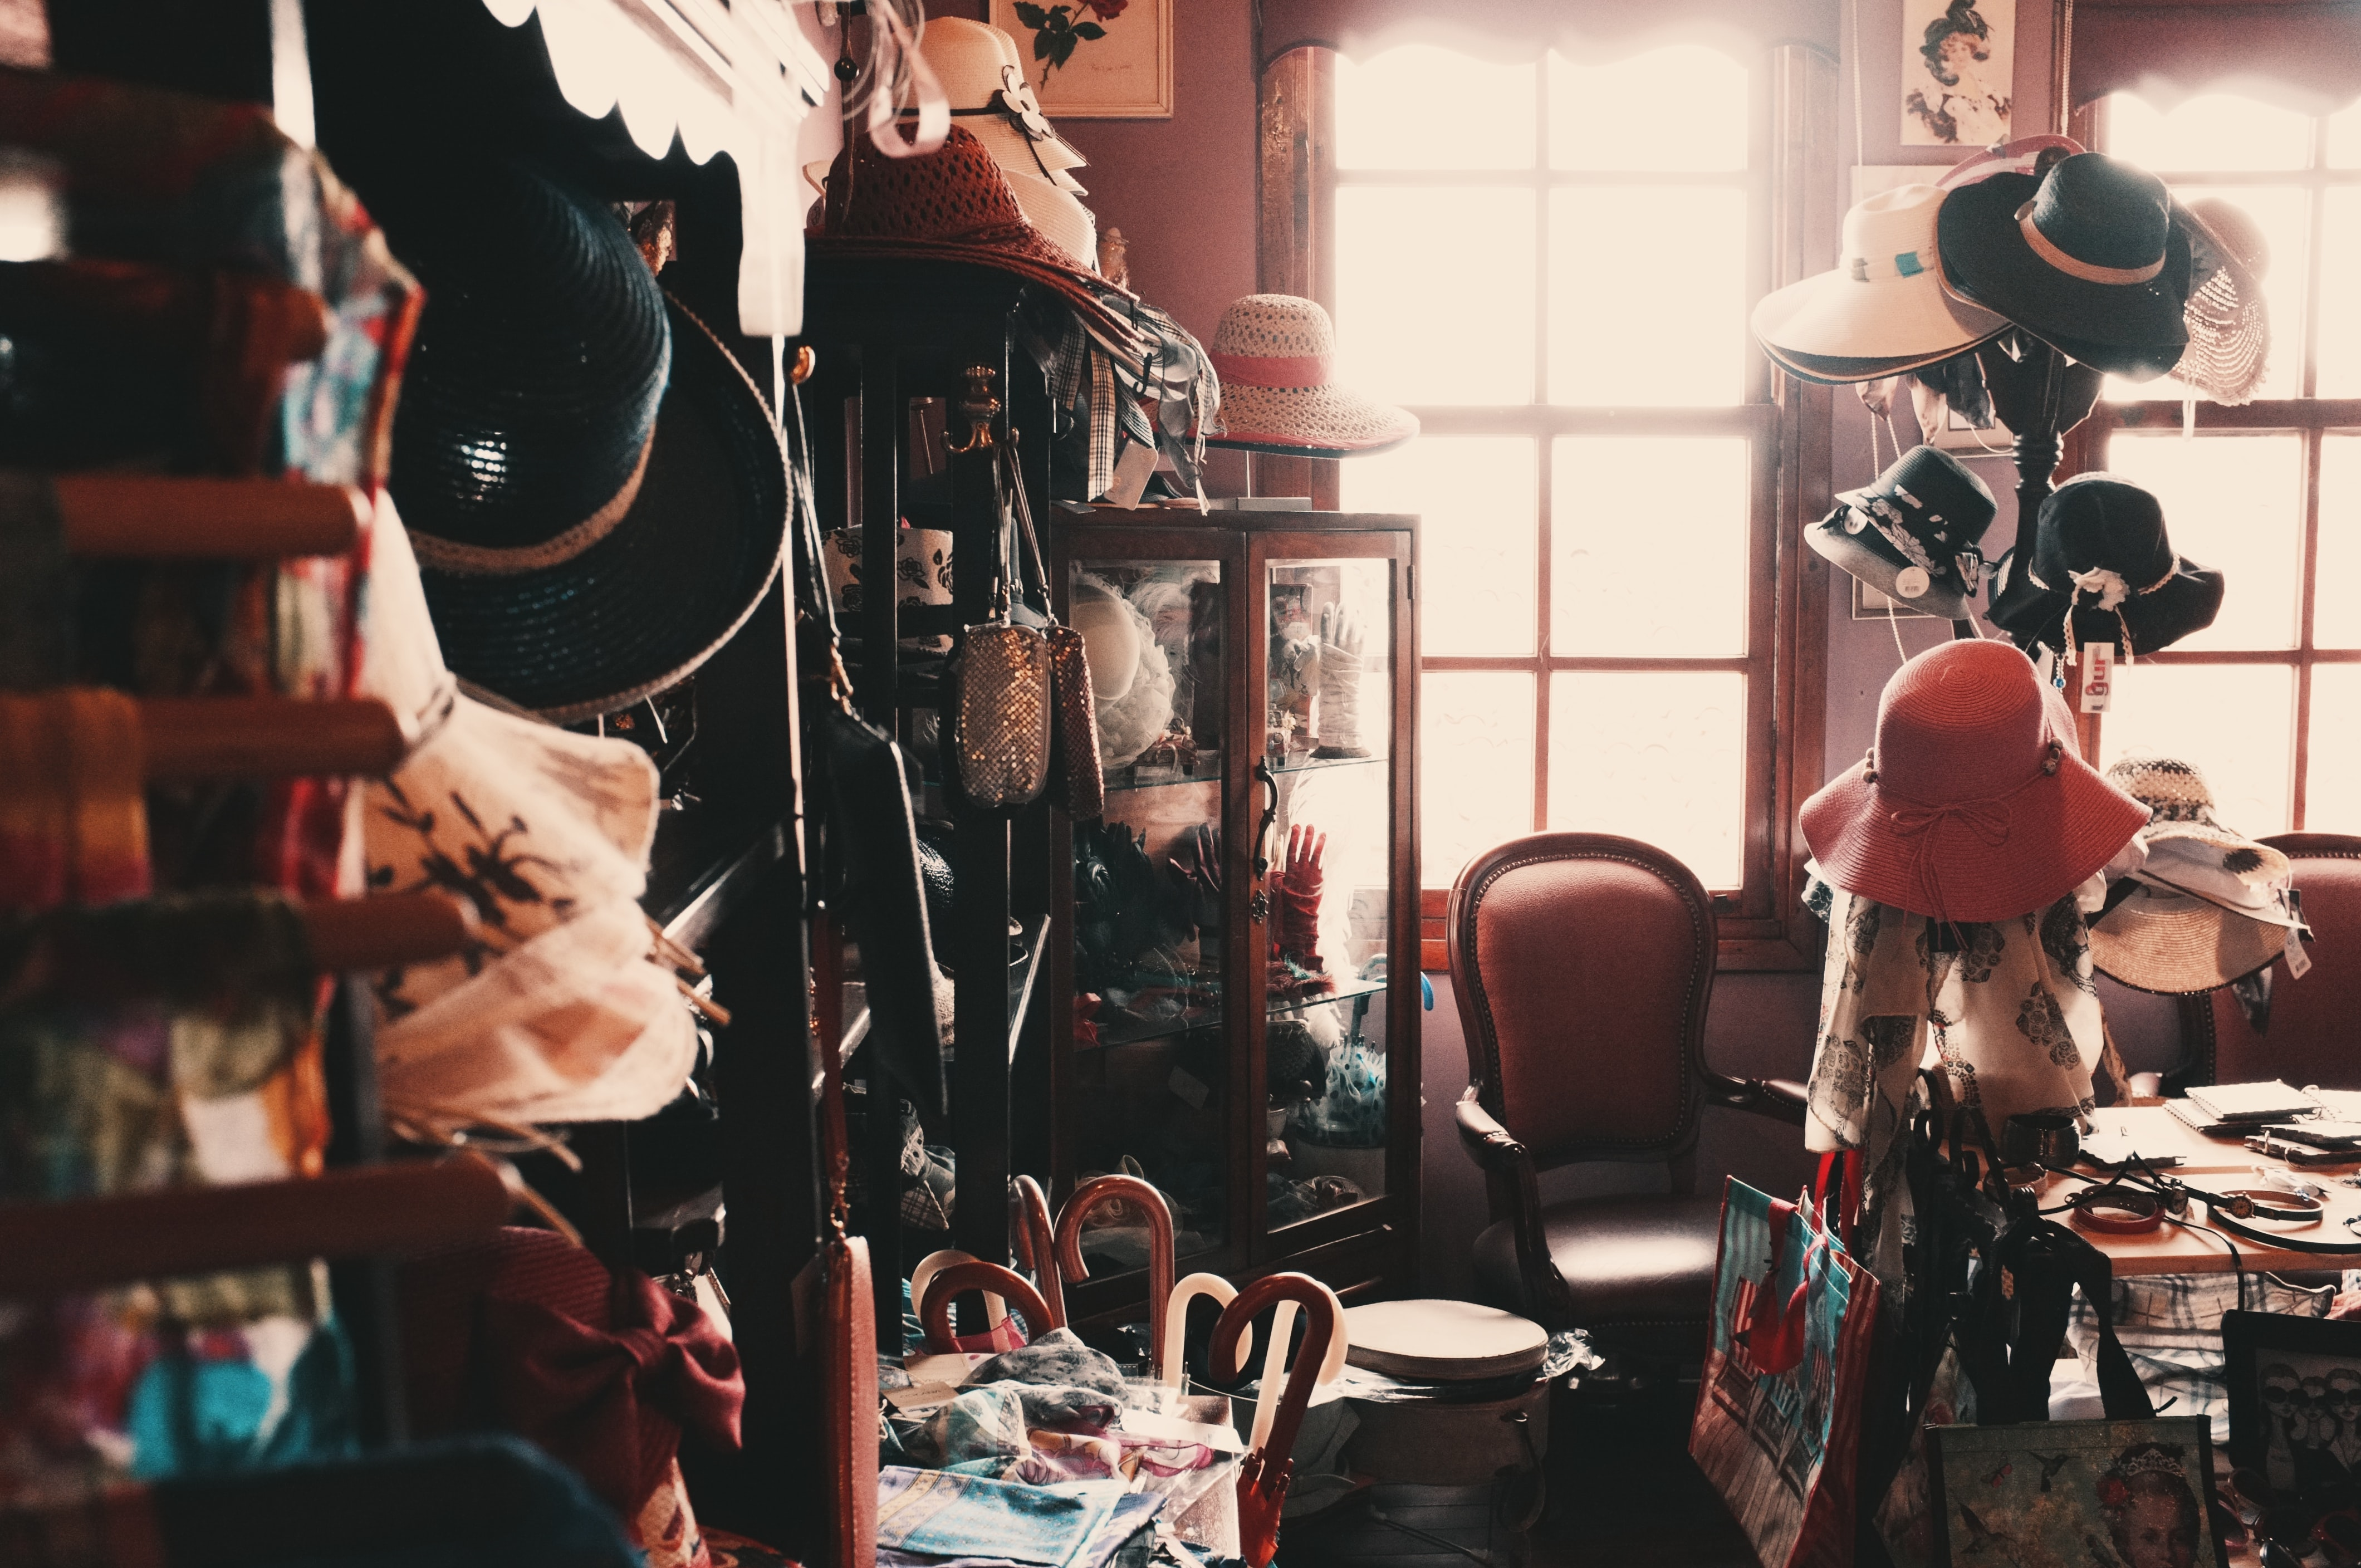 The interior of a vintage store full of various hats and accessories